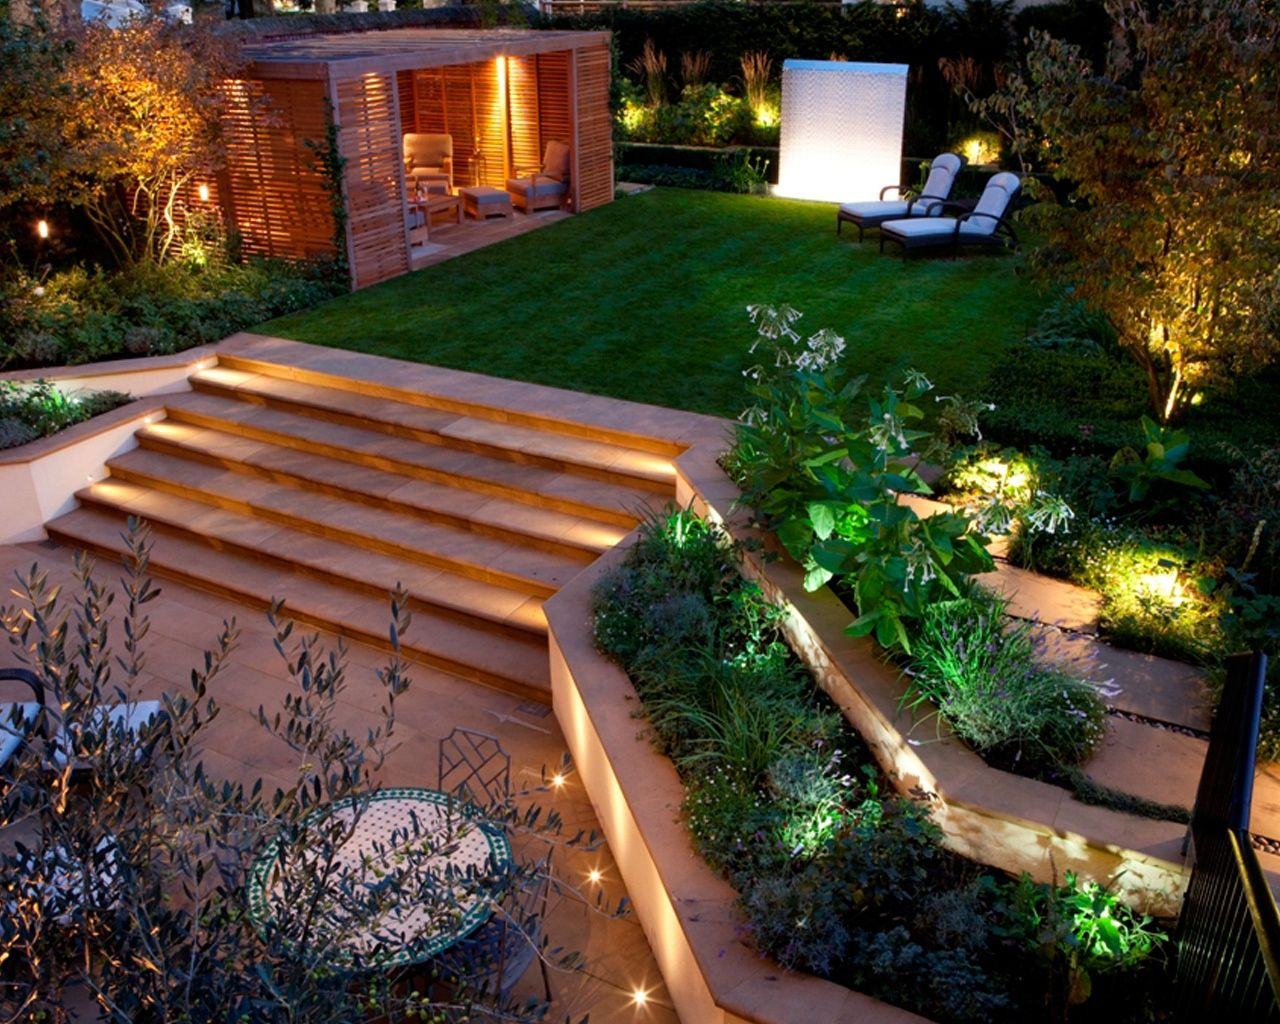 50 modern garden design ideas to try in 2017 - Garden Ideas 2017